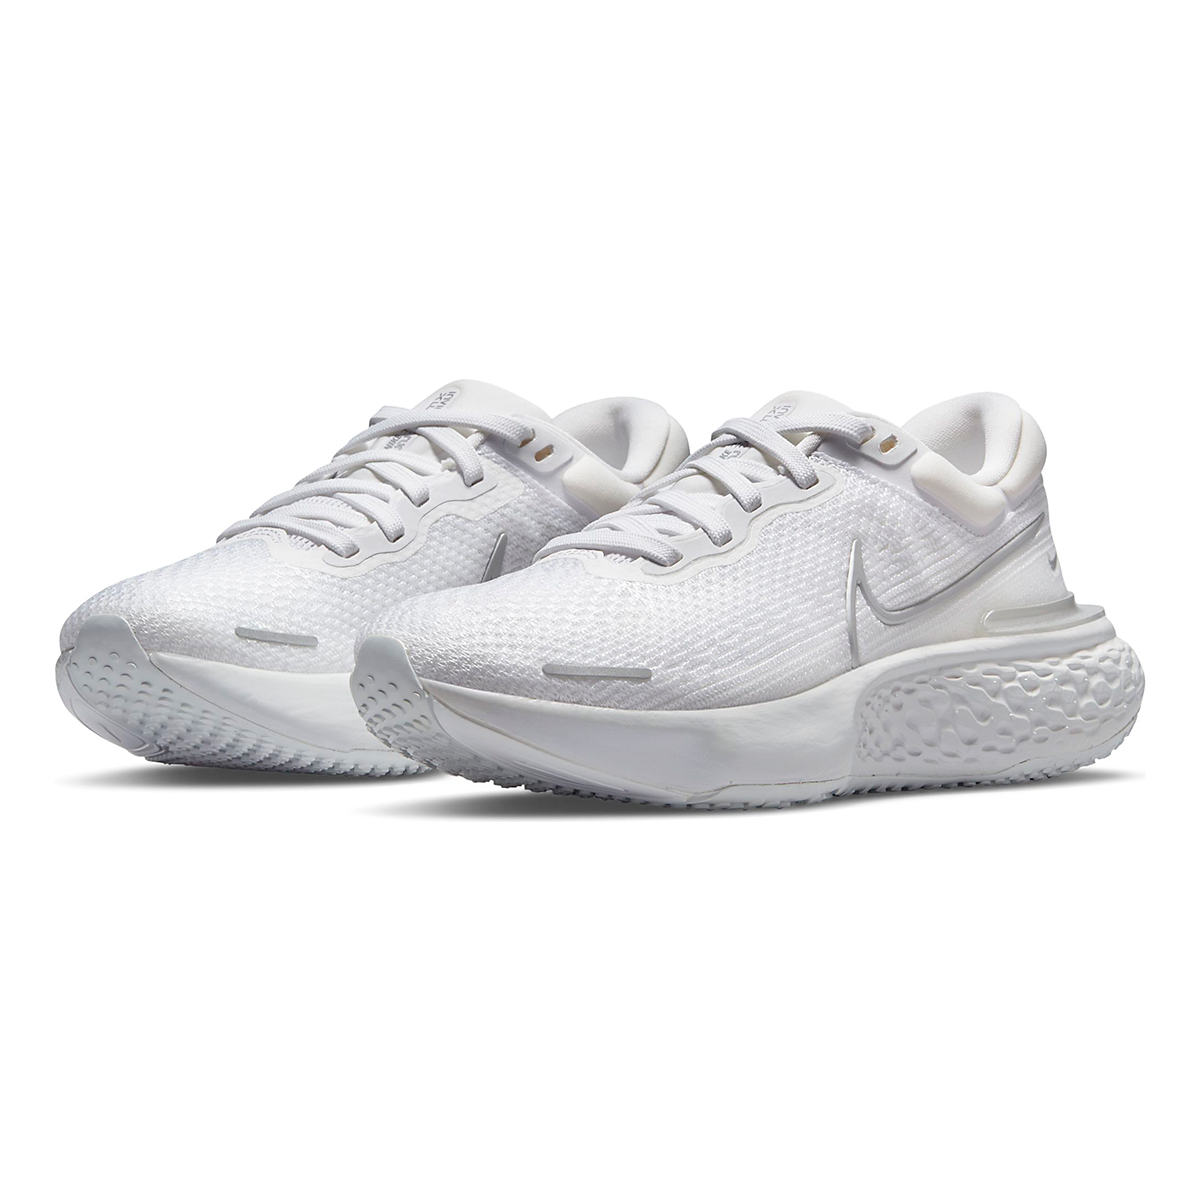 Women's Nike ZoomX Invincible Run Flyknit - Color: White/Metallic Silver/Pure Platinum - Size: 5 - Width: Regular, White/Metallic Silver/Pure Platinum, large, image 3